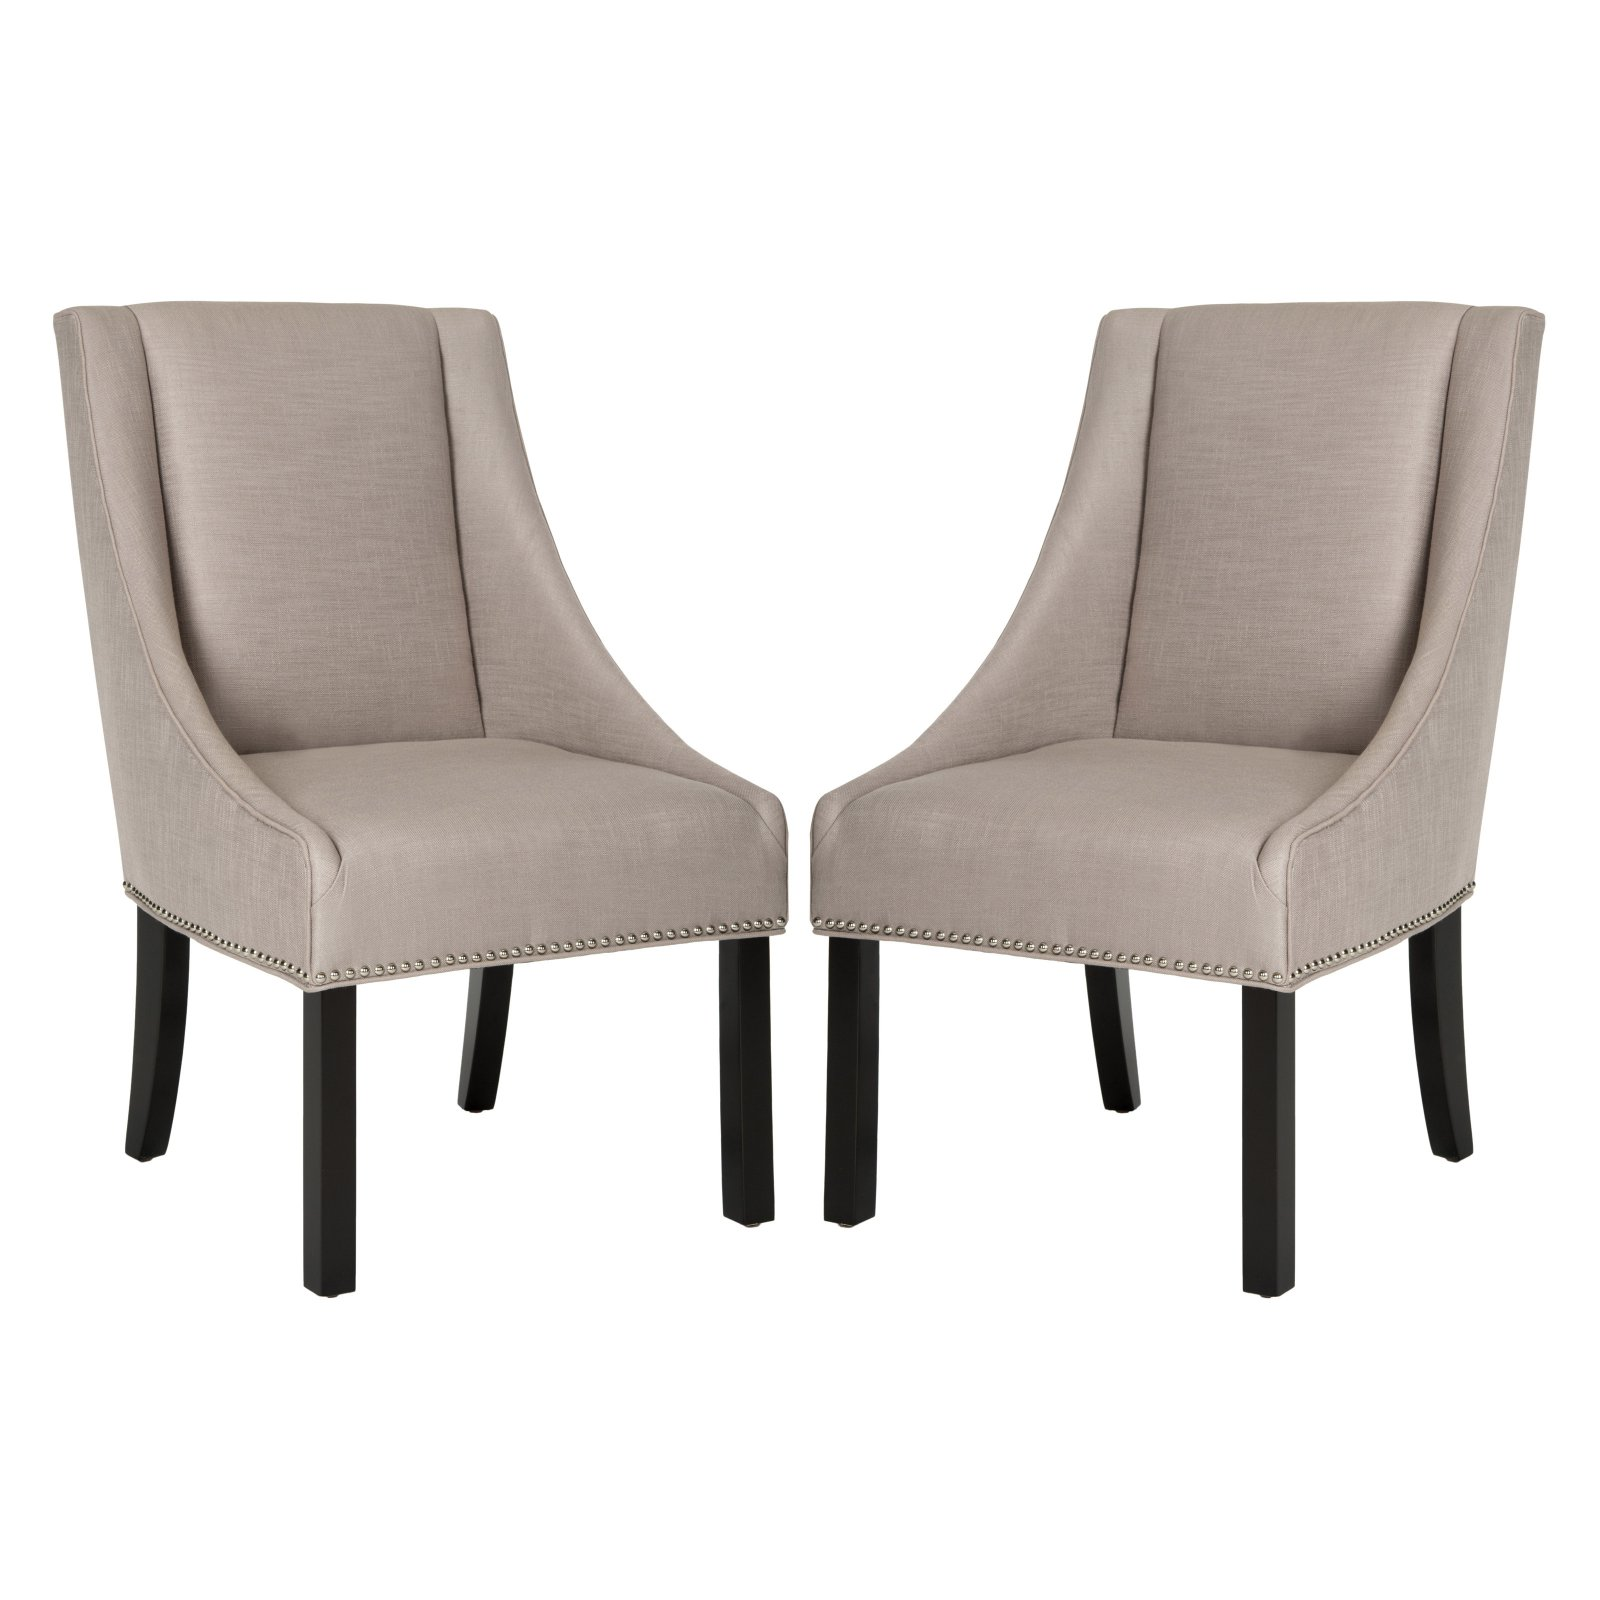 Safavieh Morris Sloping Arm Dining Chairs Set Of 2 Dining